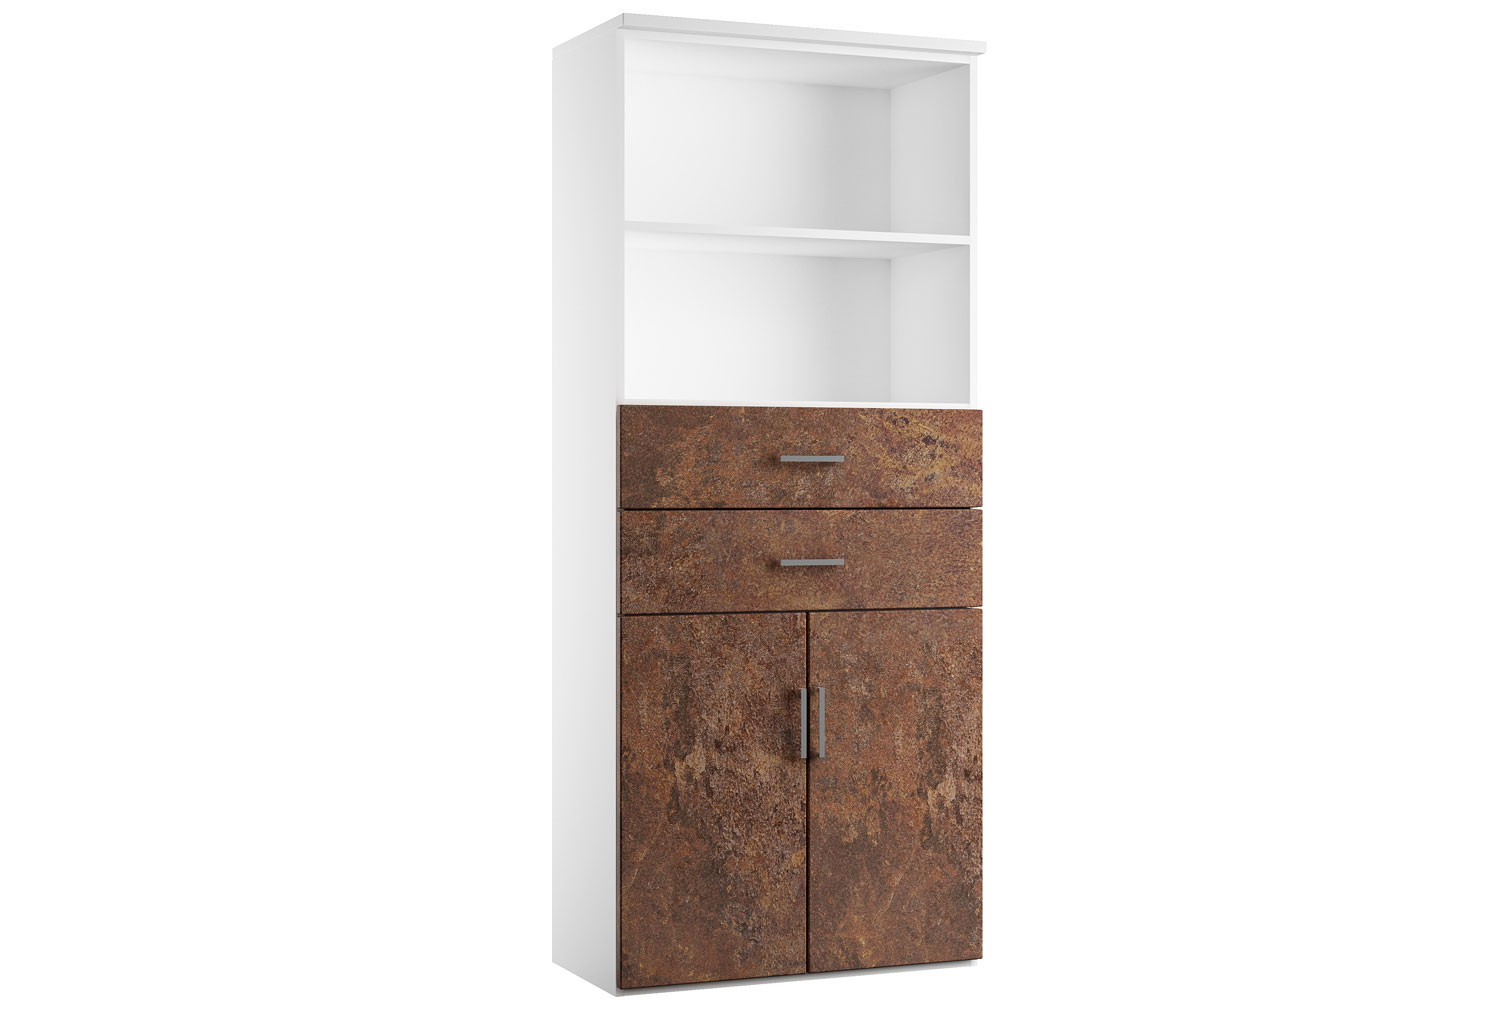 Delgado Cupboard Combination 3 (Rusted Steel)